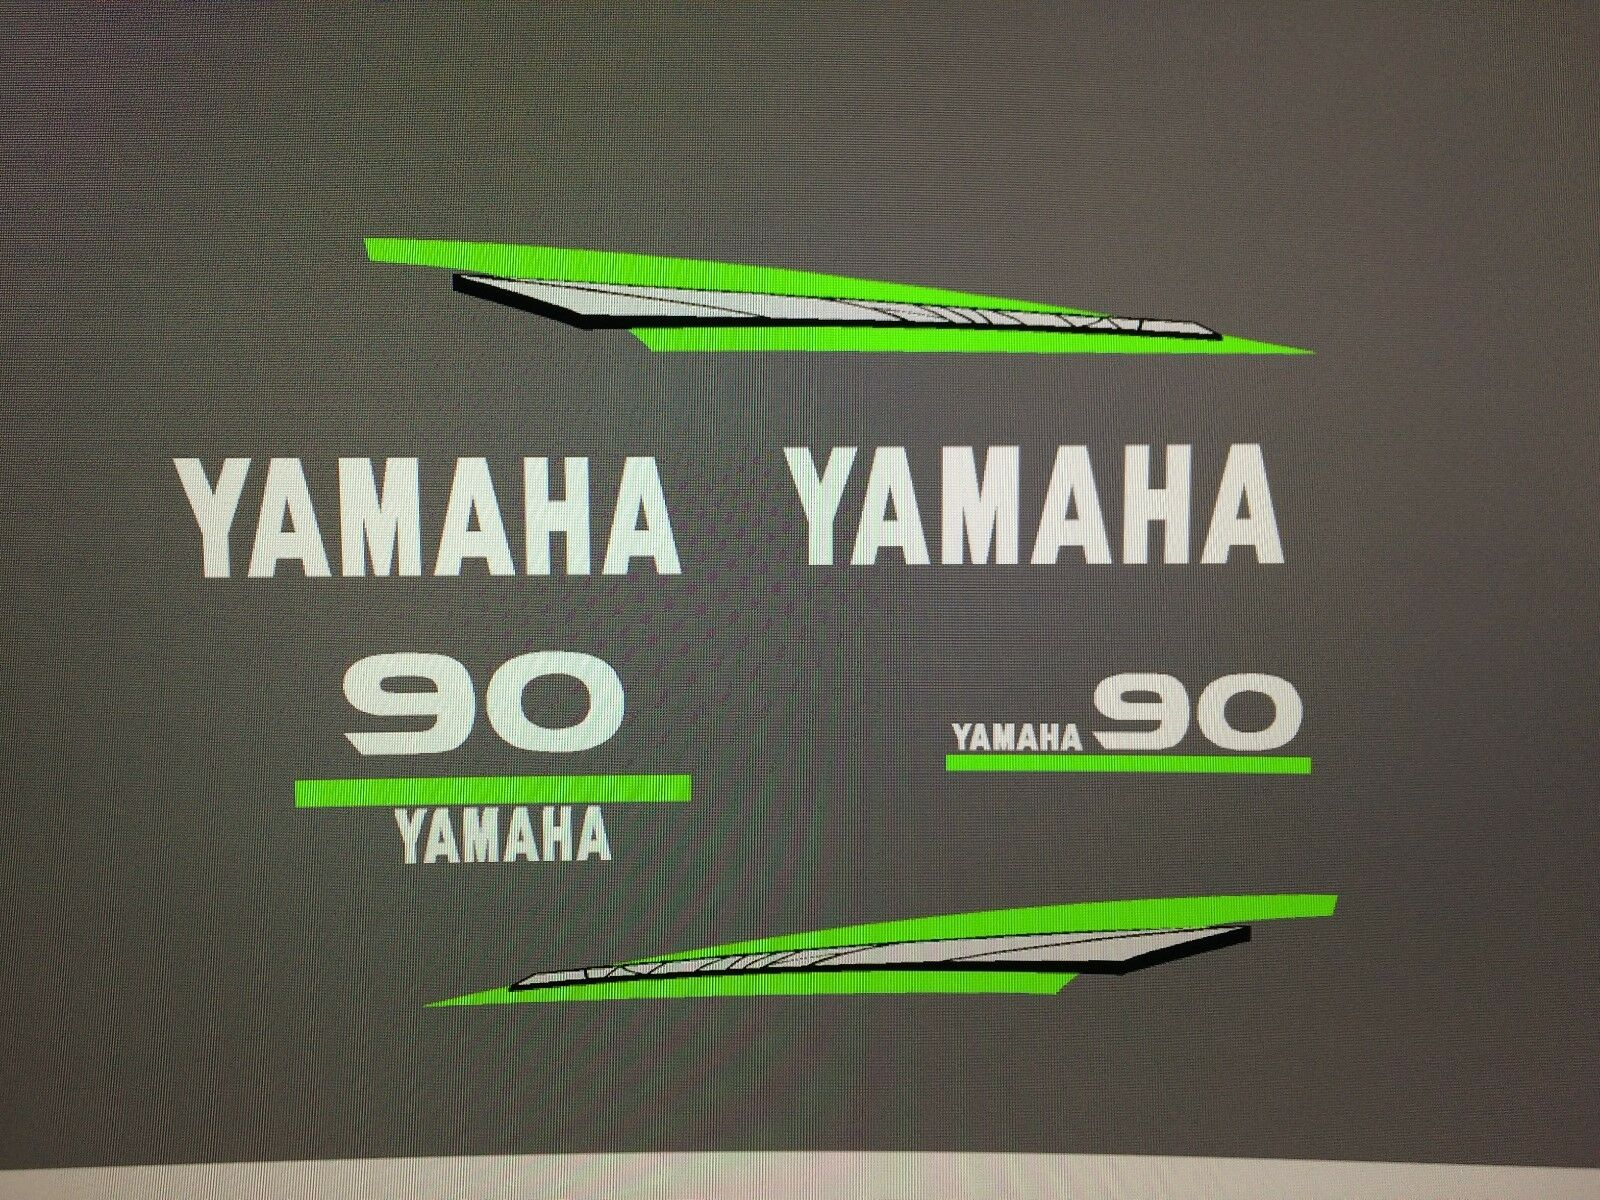 Yamaha 2-Stroke 20  - 90 hp Outboard Lime Green MARINE VINYL Decal Kit message hp  stadium giveaways